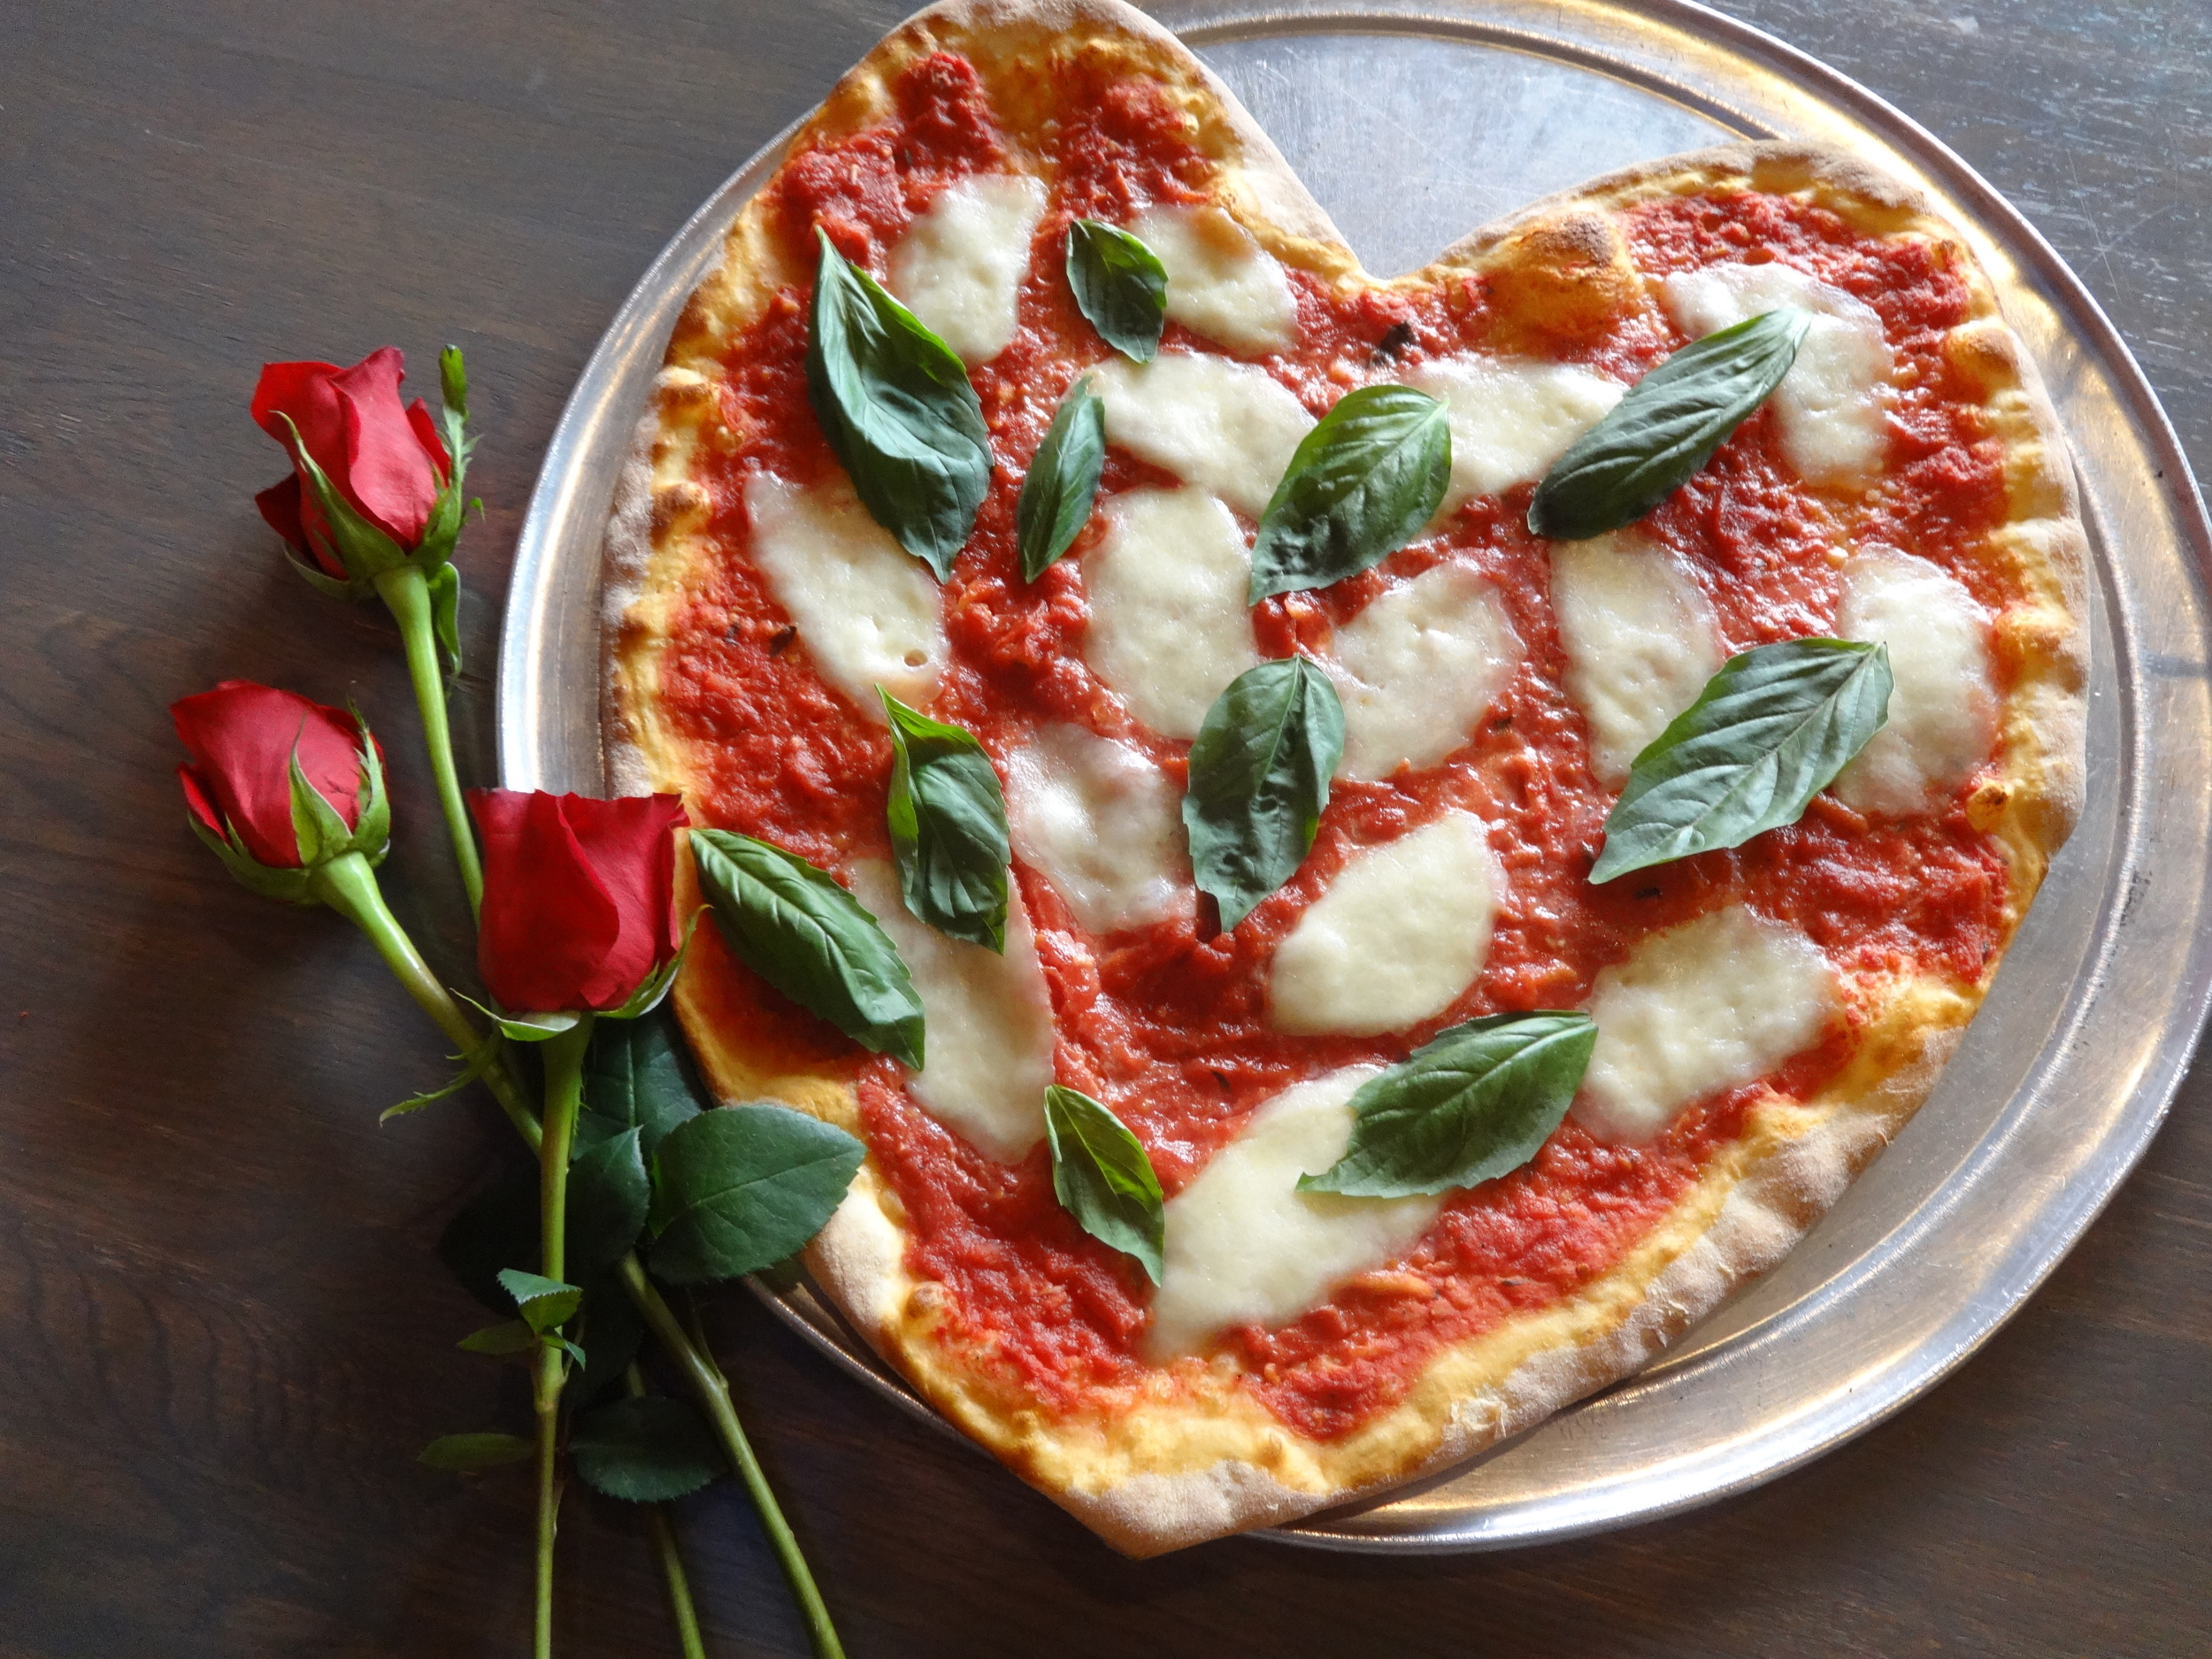 Slice, Valentine's Day, Heart Shaped Pizza, Heart Pizza, South Philadelphia, Aversa pR